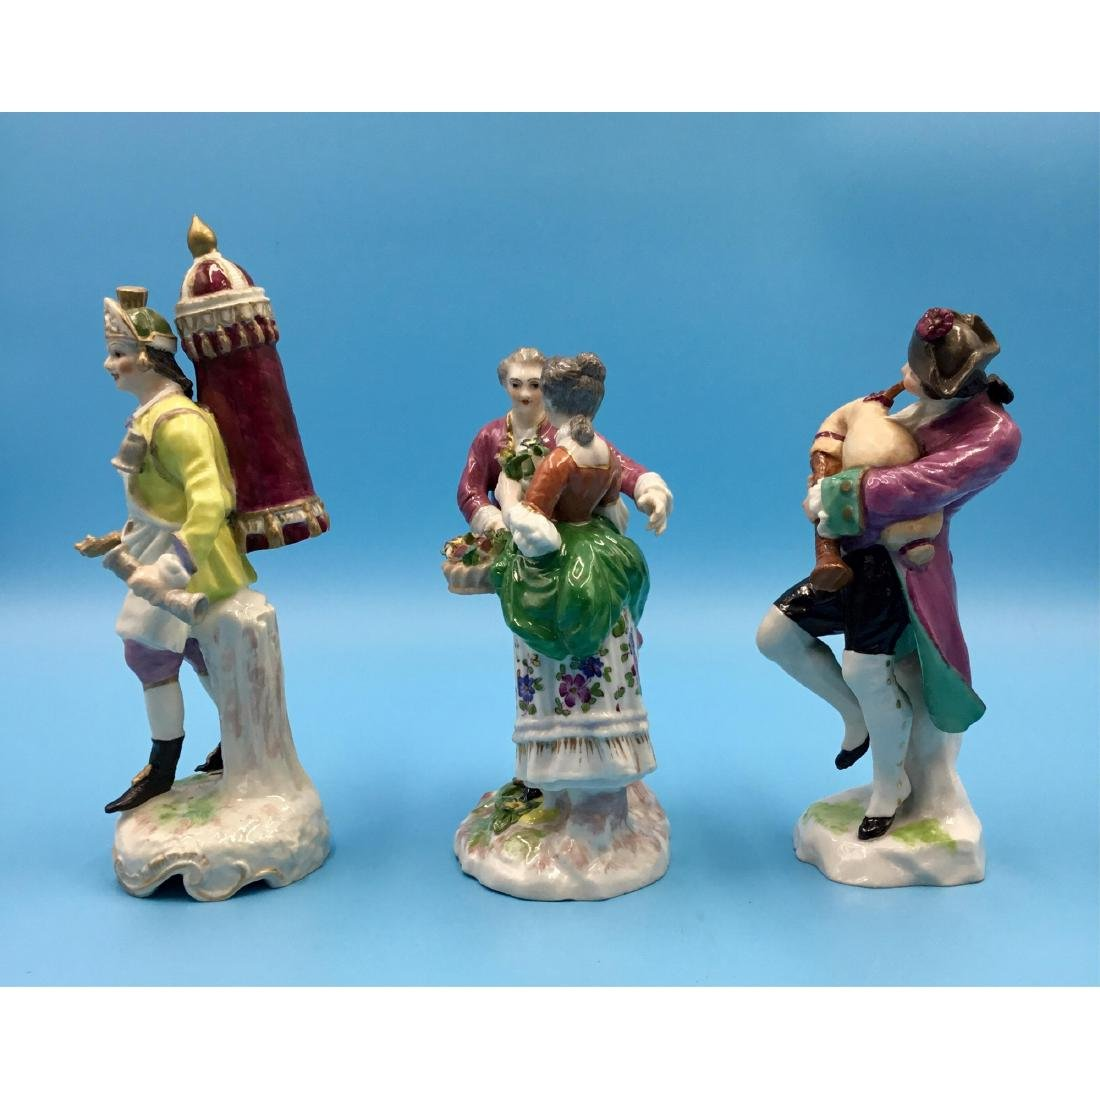 GROUP OF 3 SAMSON FRENCH PORCELAIN FIGURINES - 2